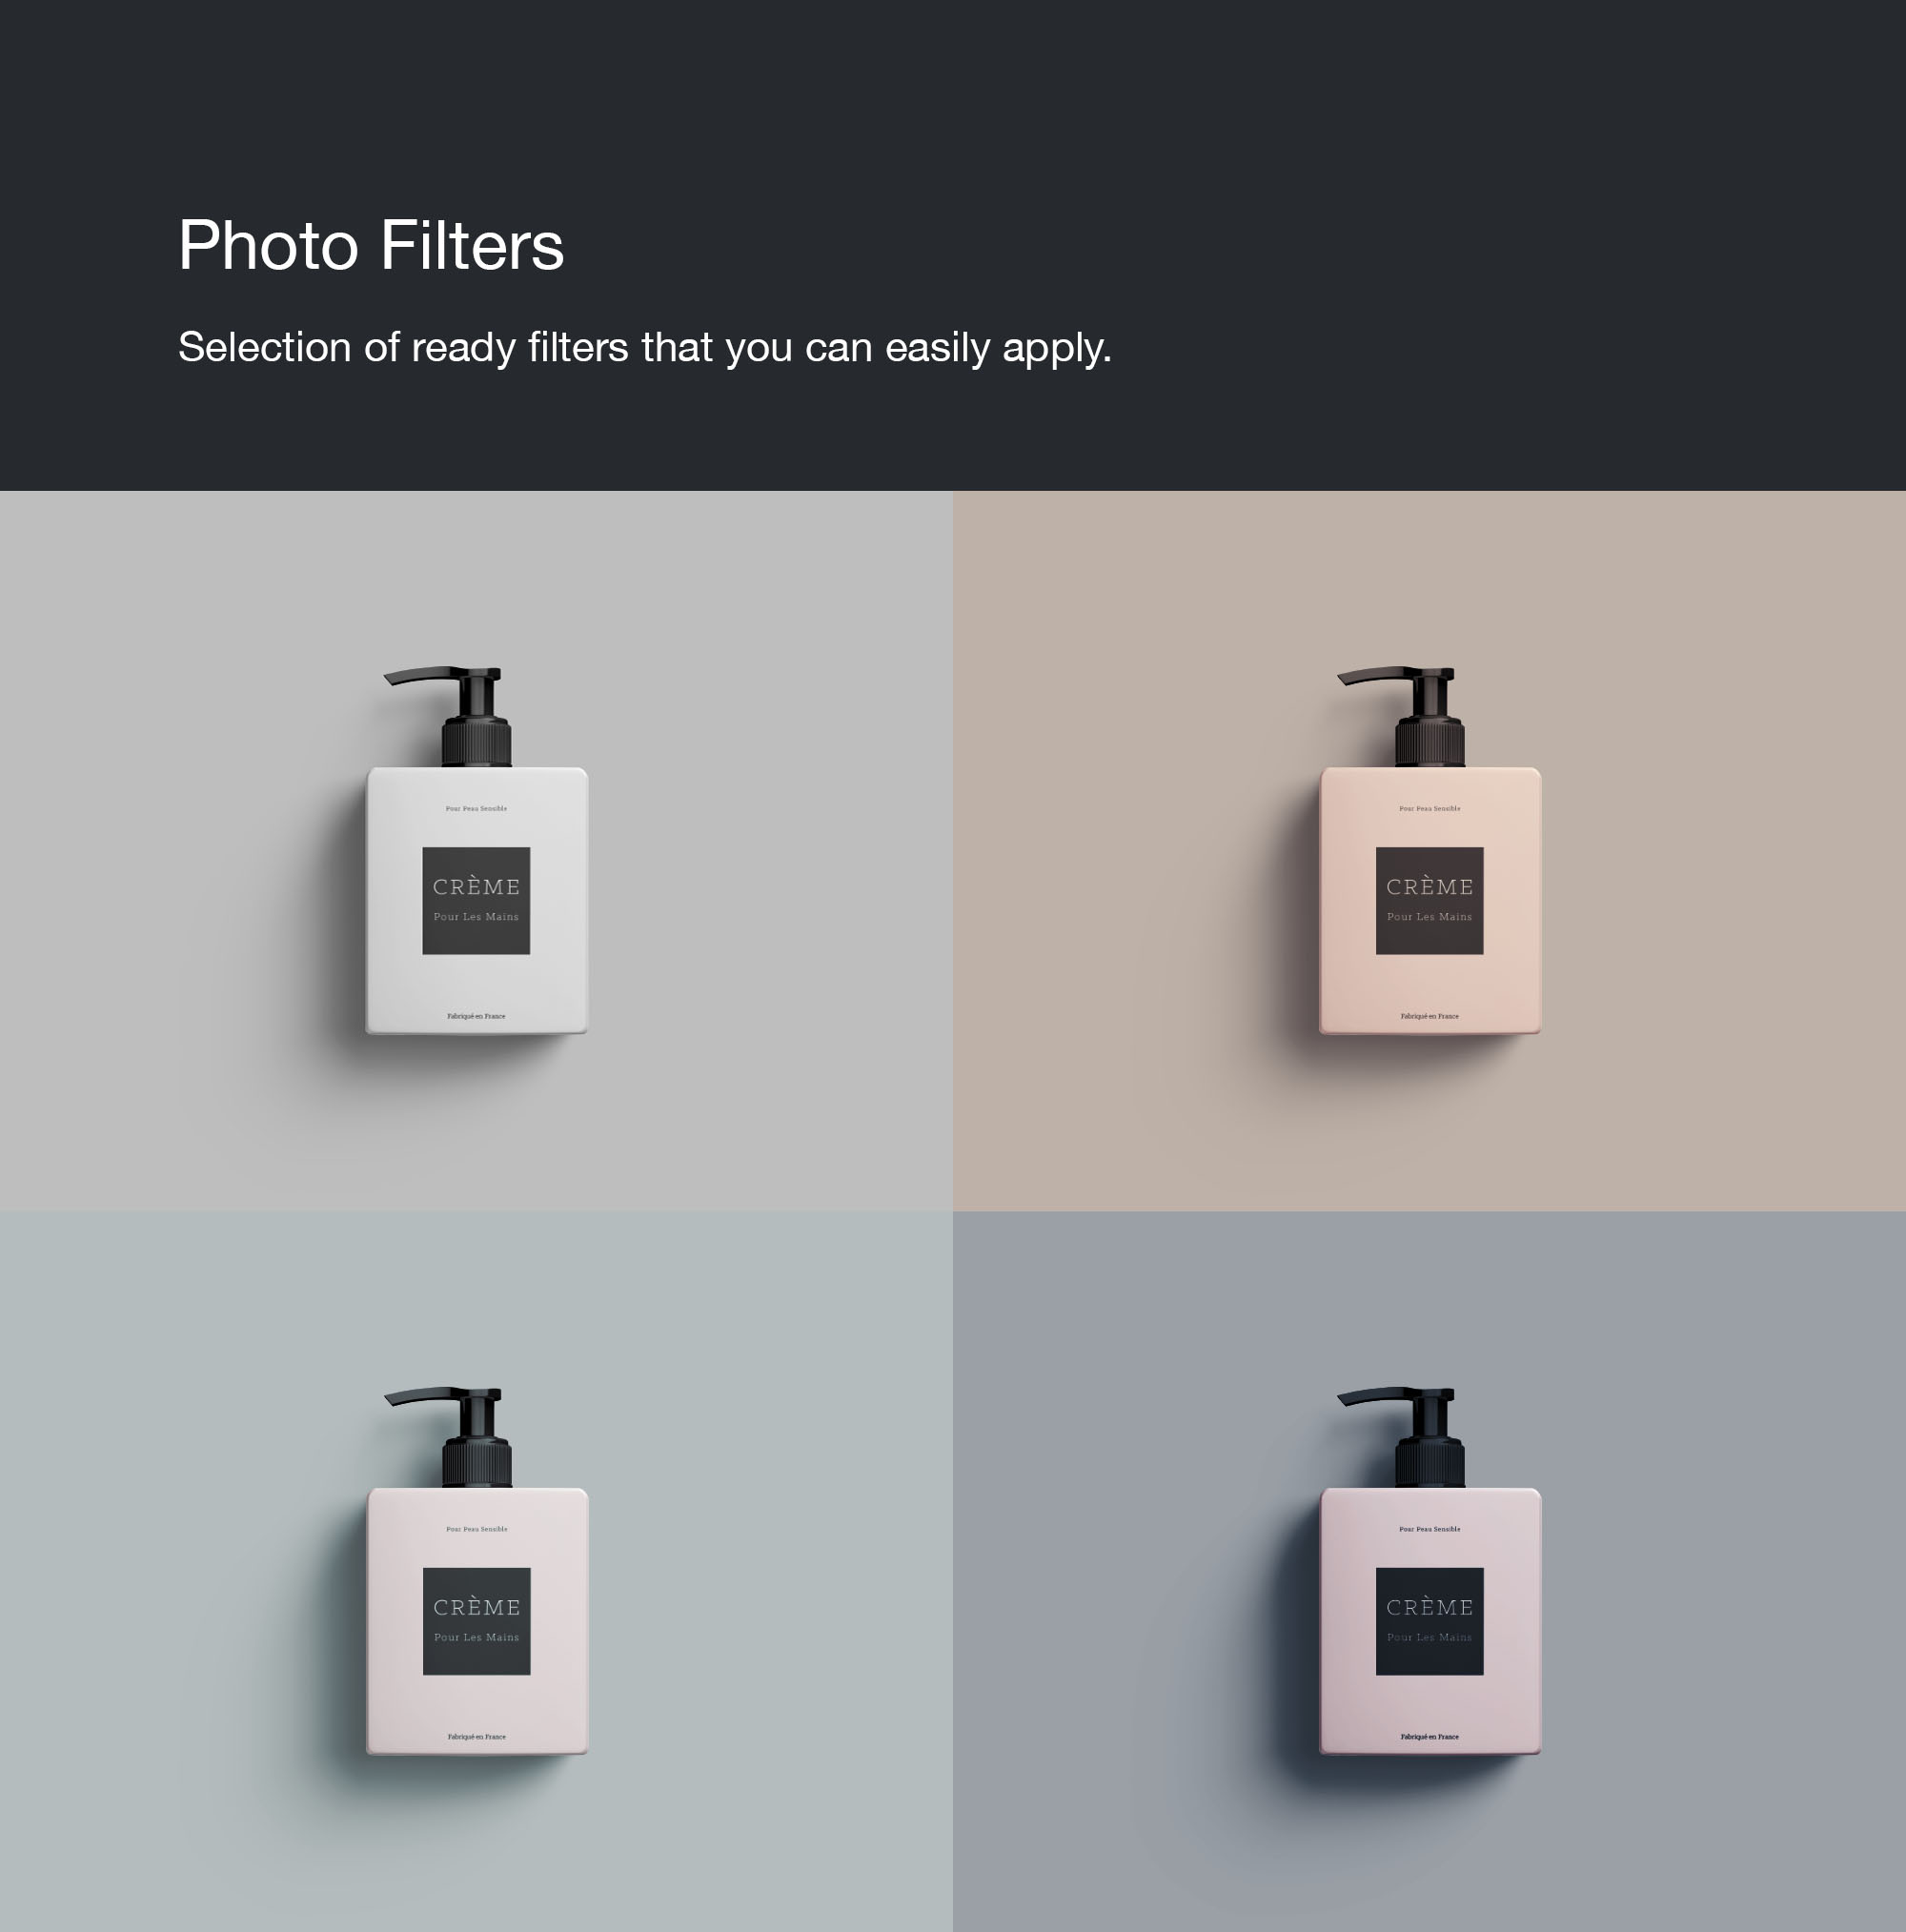 Cream Bottle Mockup Filters